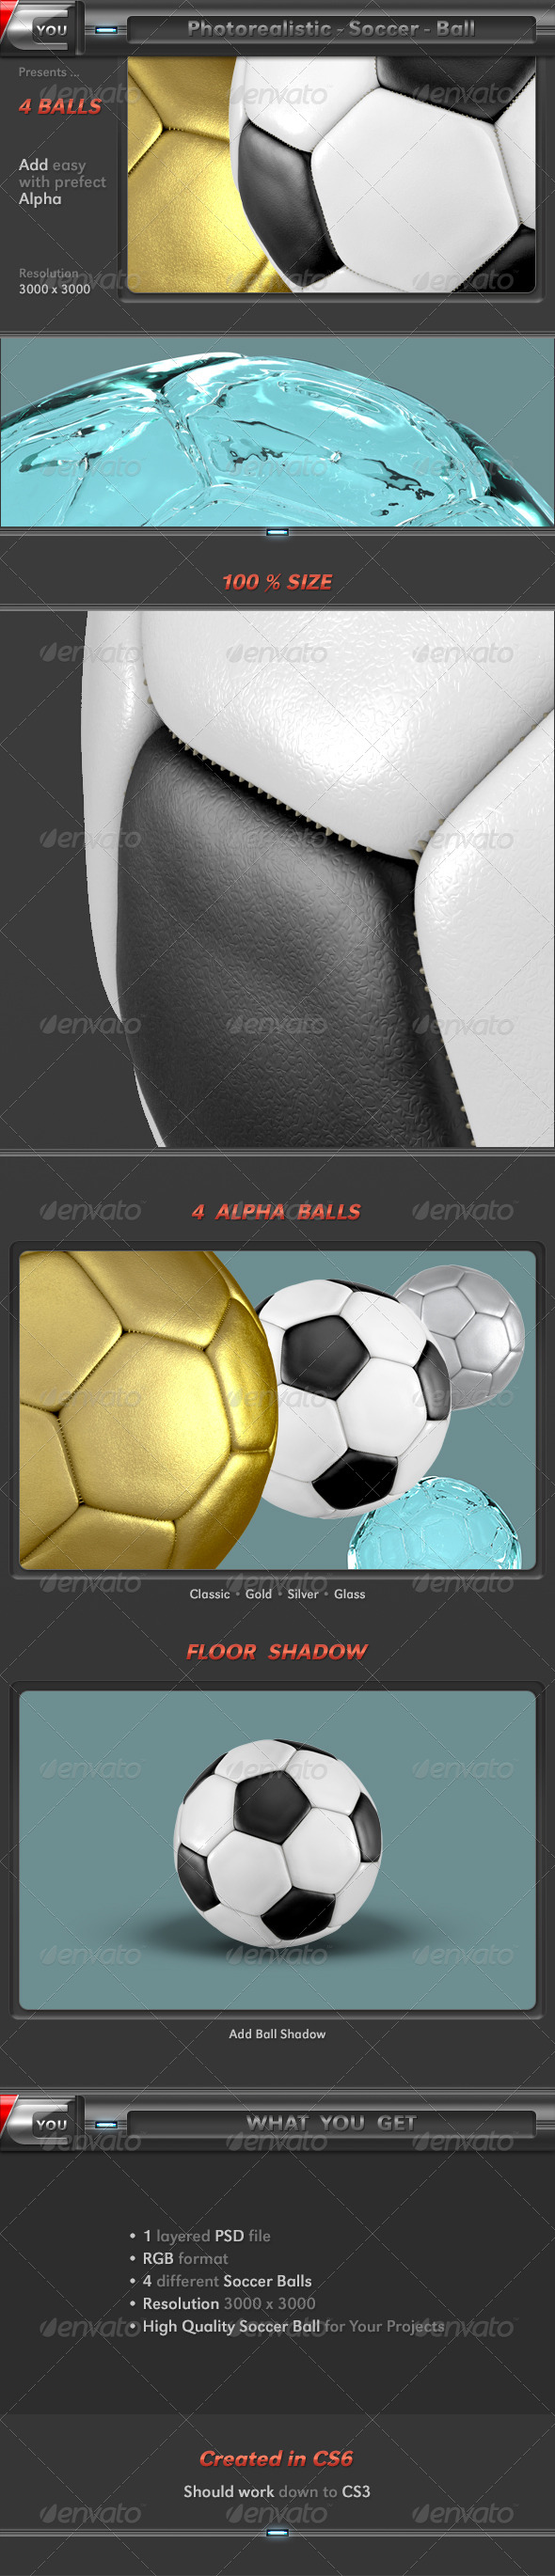 3D Photorealistic Soccer Ball Set - Objects 3D Renders